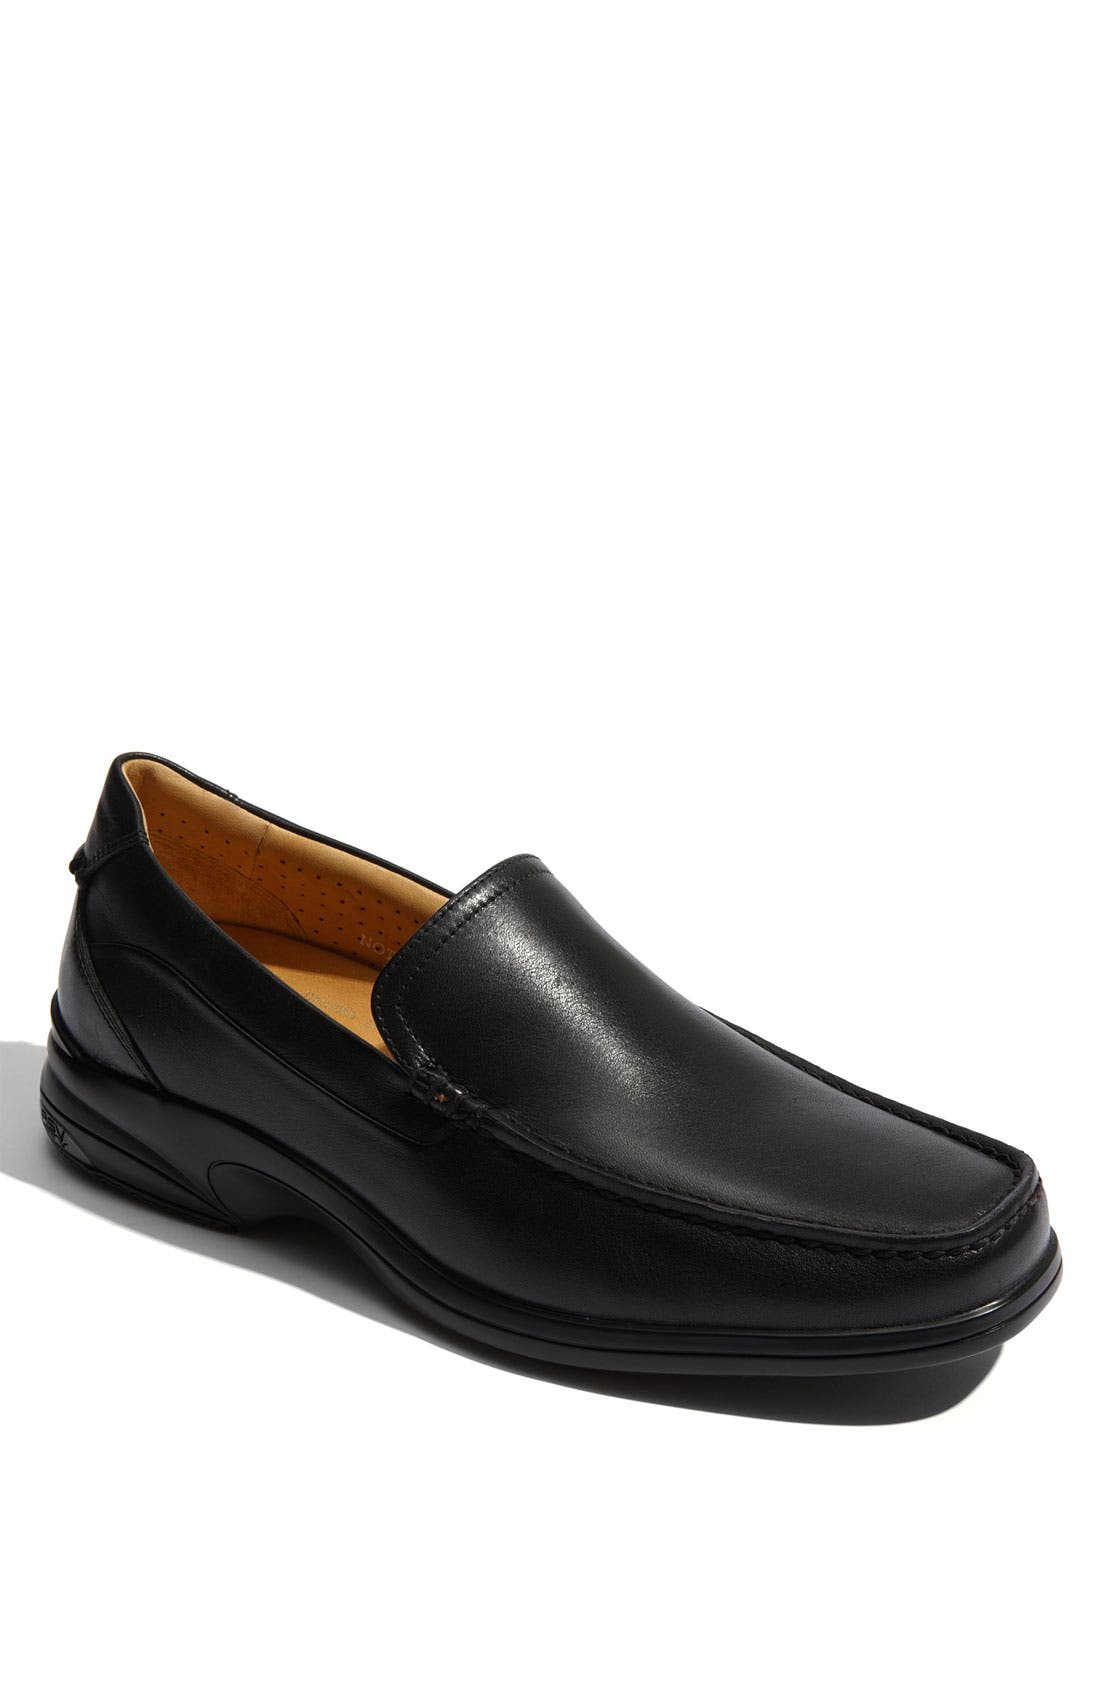 Main Image - Sperry Top-Sider® 'Gold ASV Venetian' Loafer (Men)